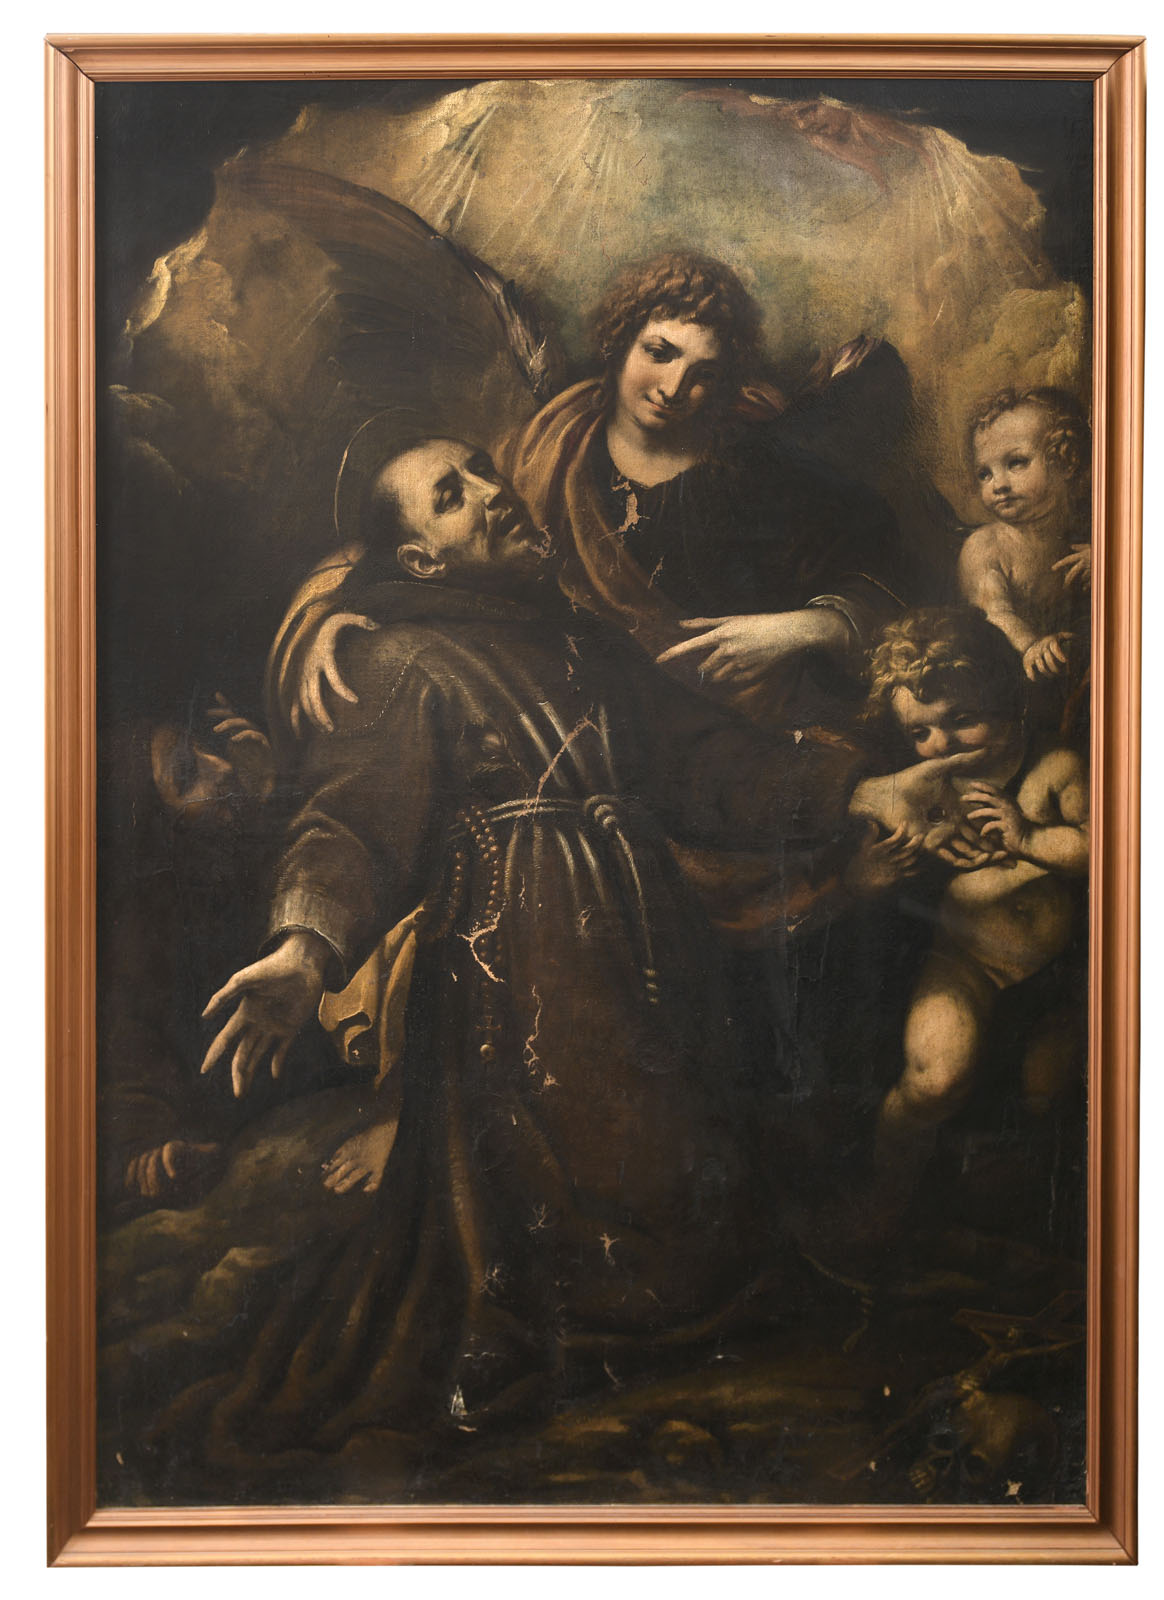 Lot 94 - CARRACCI ANNIBALE